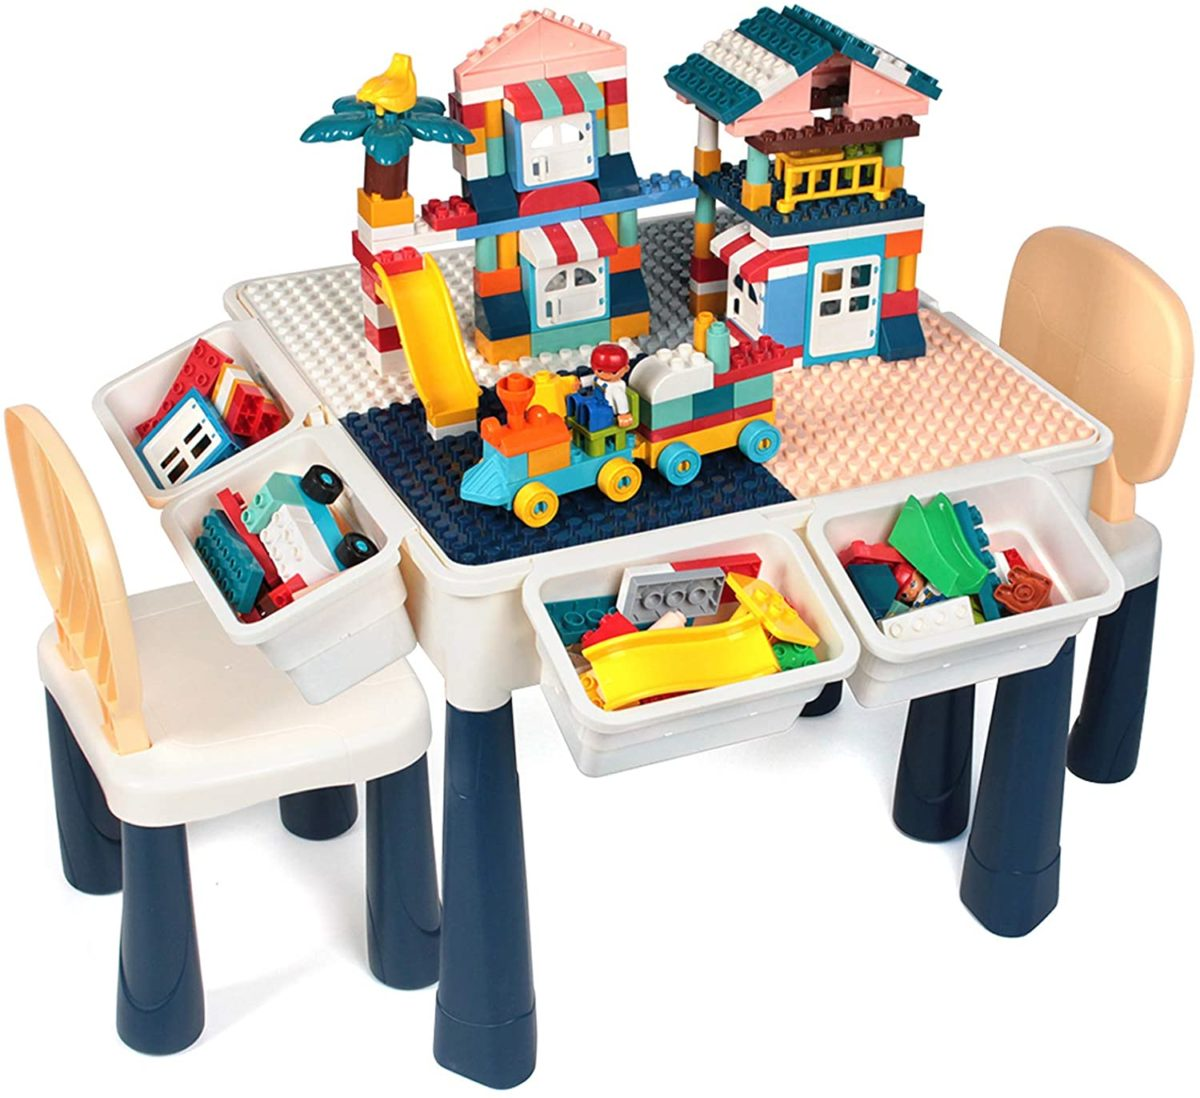 toys for toddlers: here are 35 gifts for every toddler in your life   we are giving you all of the best toys to buy the toddler in your life for christmas.